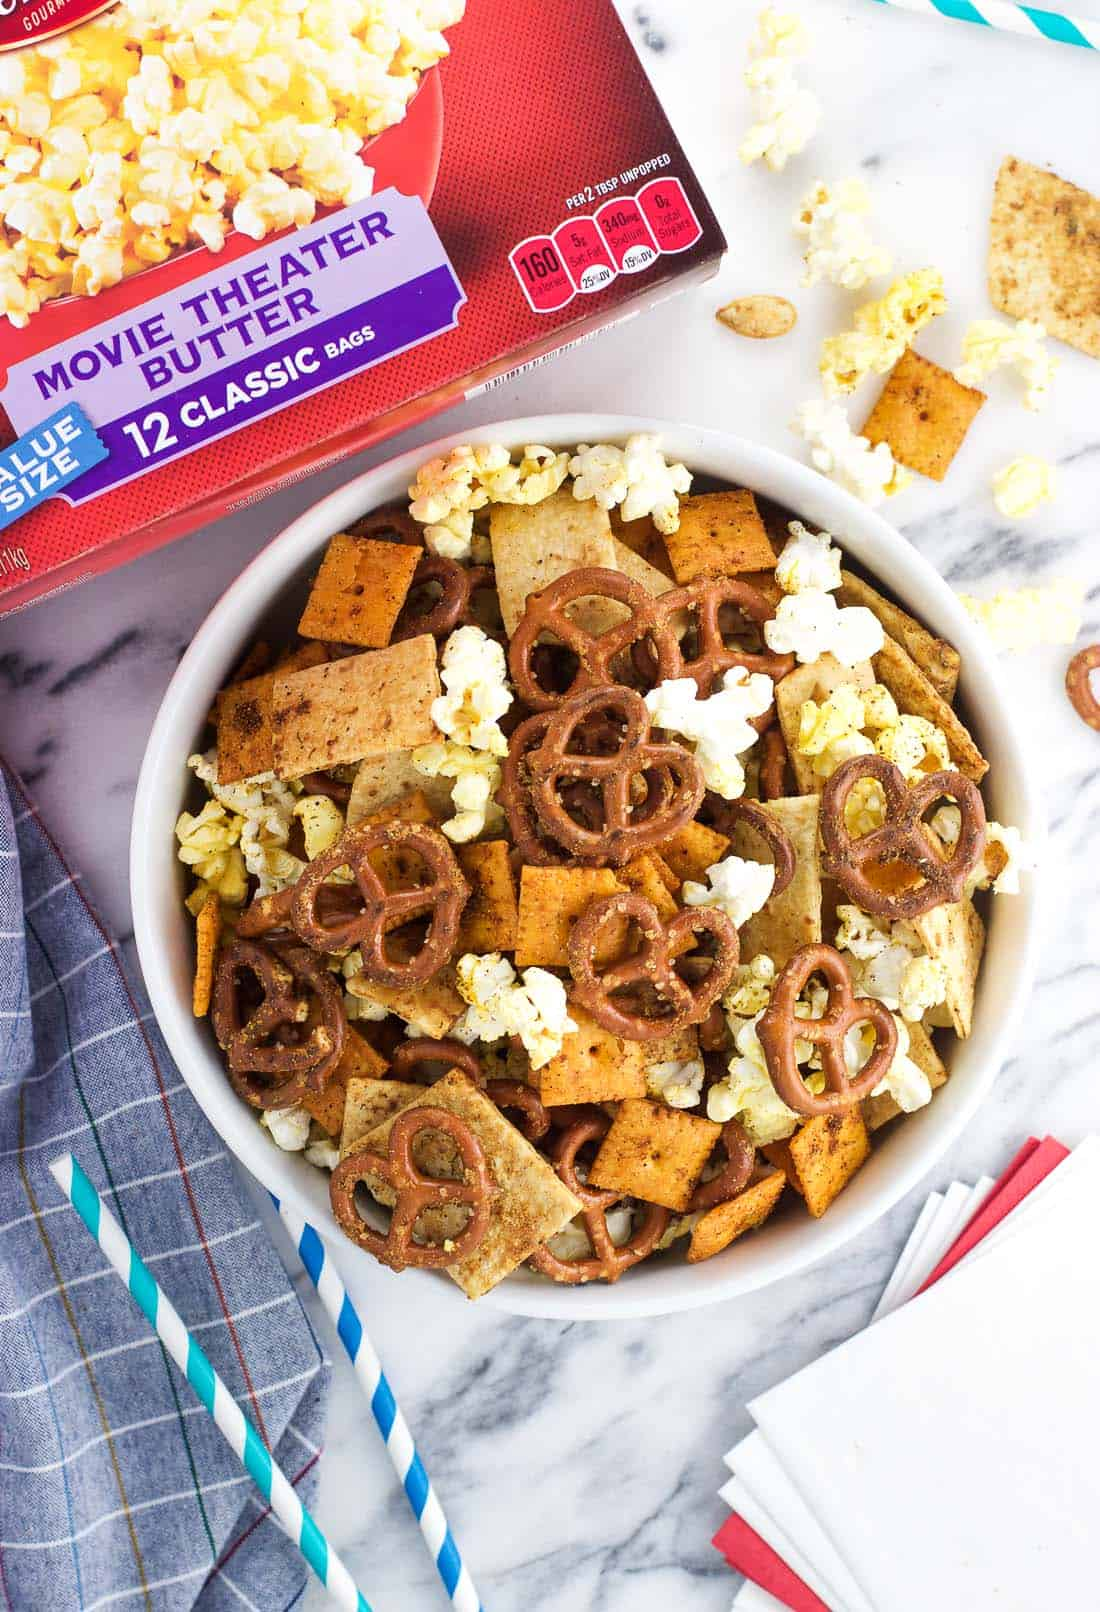 An overhead shot of a bowl of popcorn snack mix next to a box of popcorn